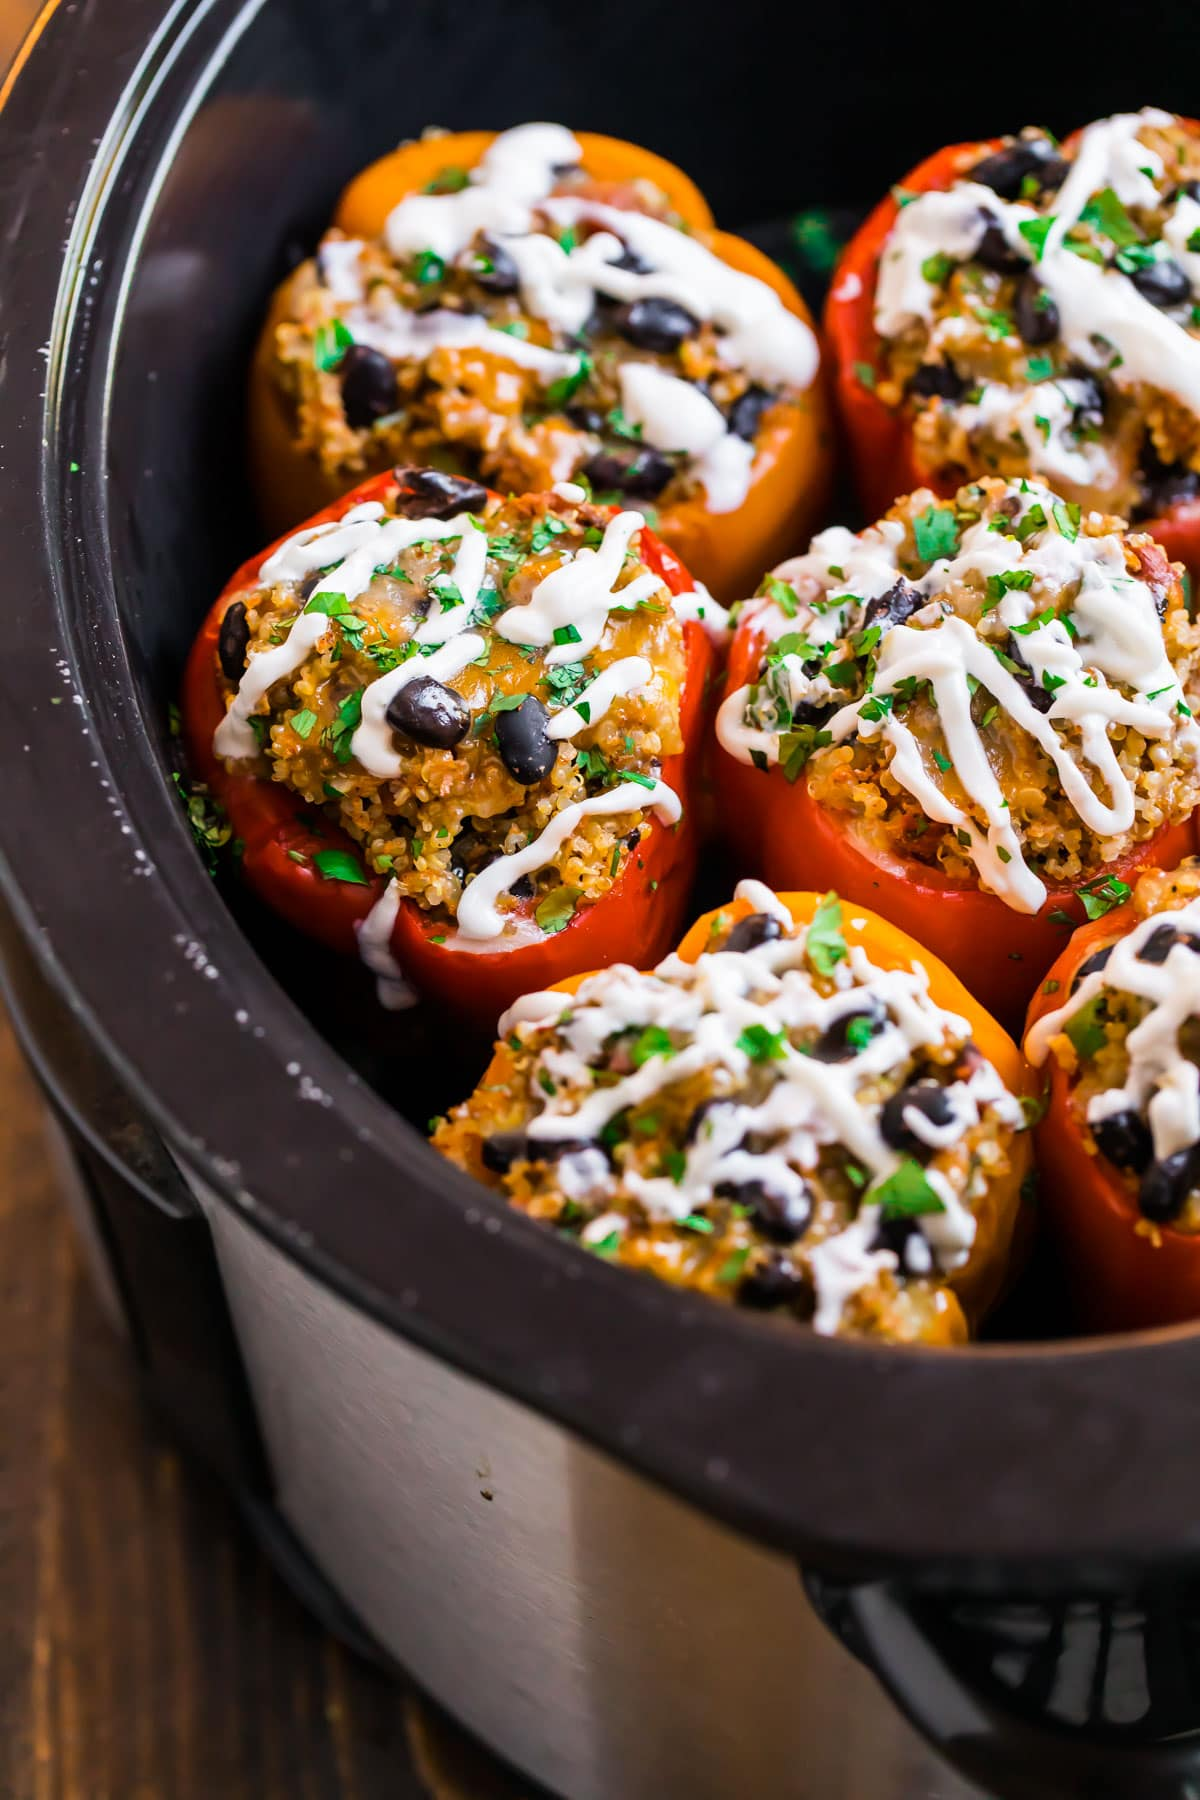 Healthy crockpot stuffed peppers in a slow cooker made with quinoa, black beans, ground chicken, and topped with cheese